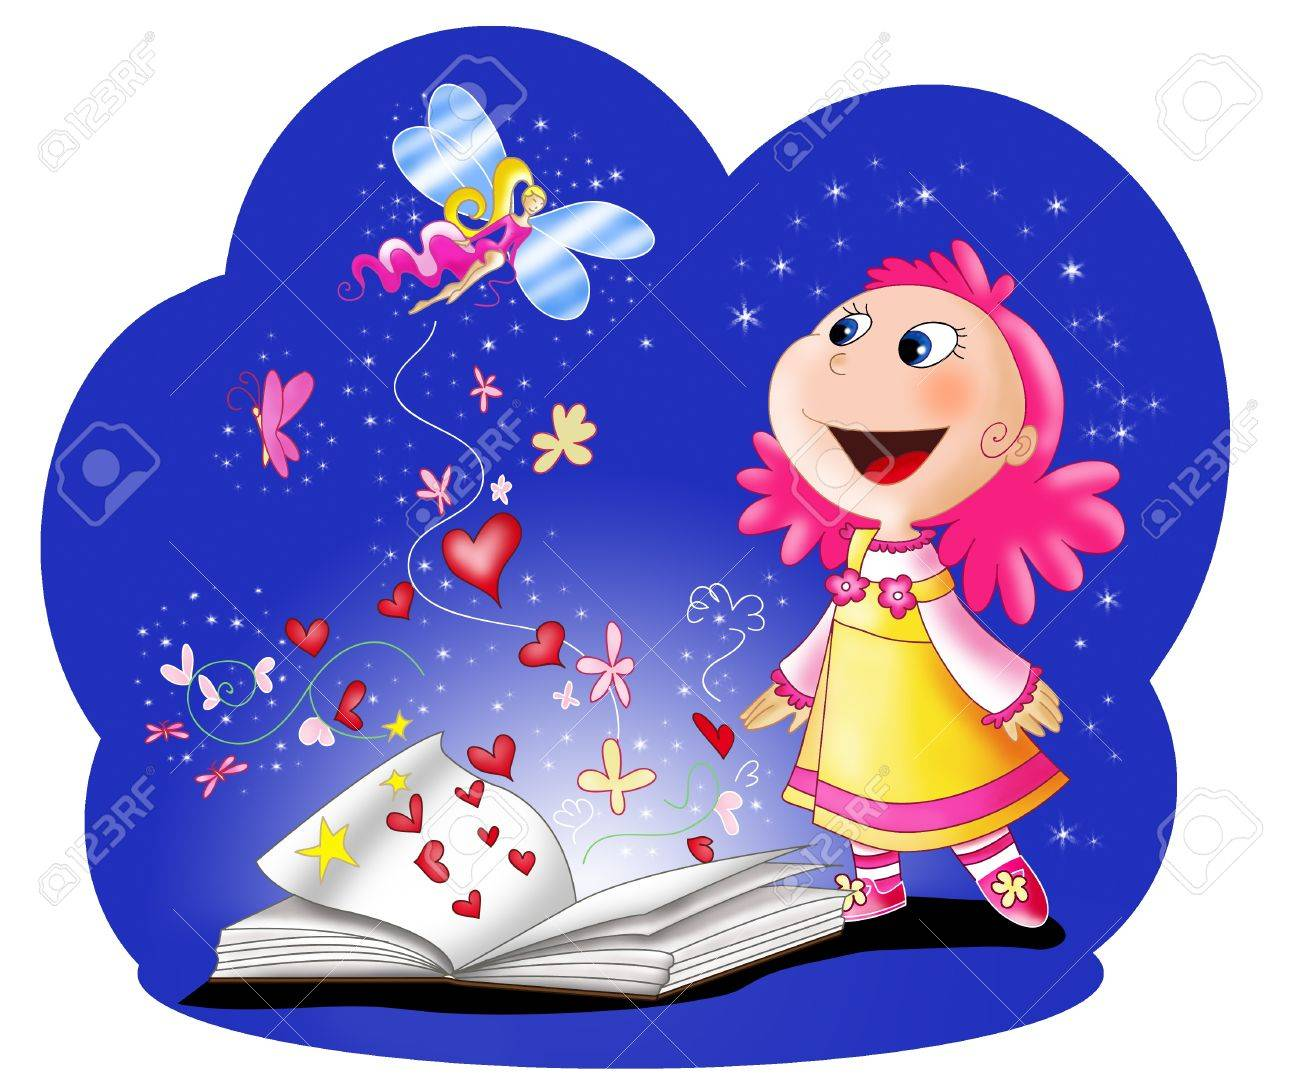 Magic fairy tales book and an amazed girl  Digital illustration Stock Photo - 13133105